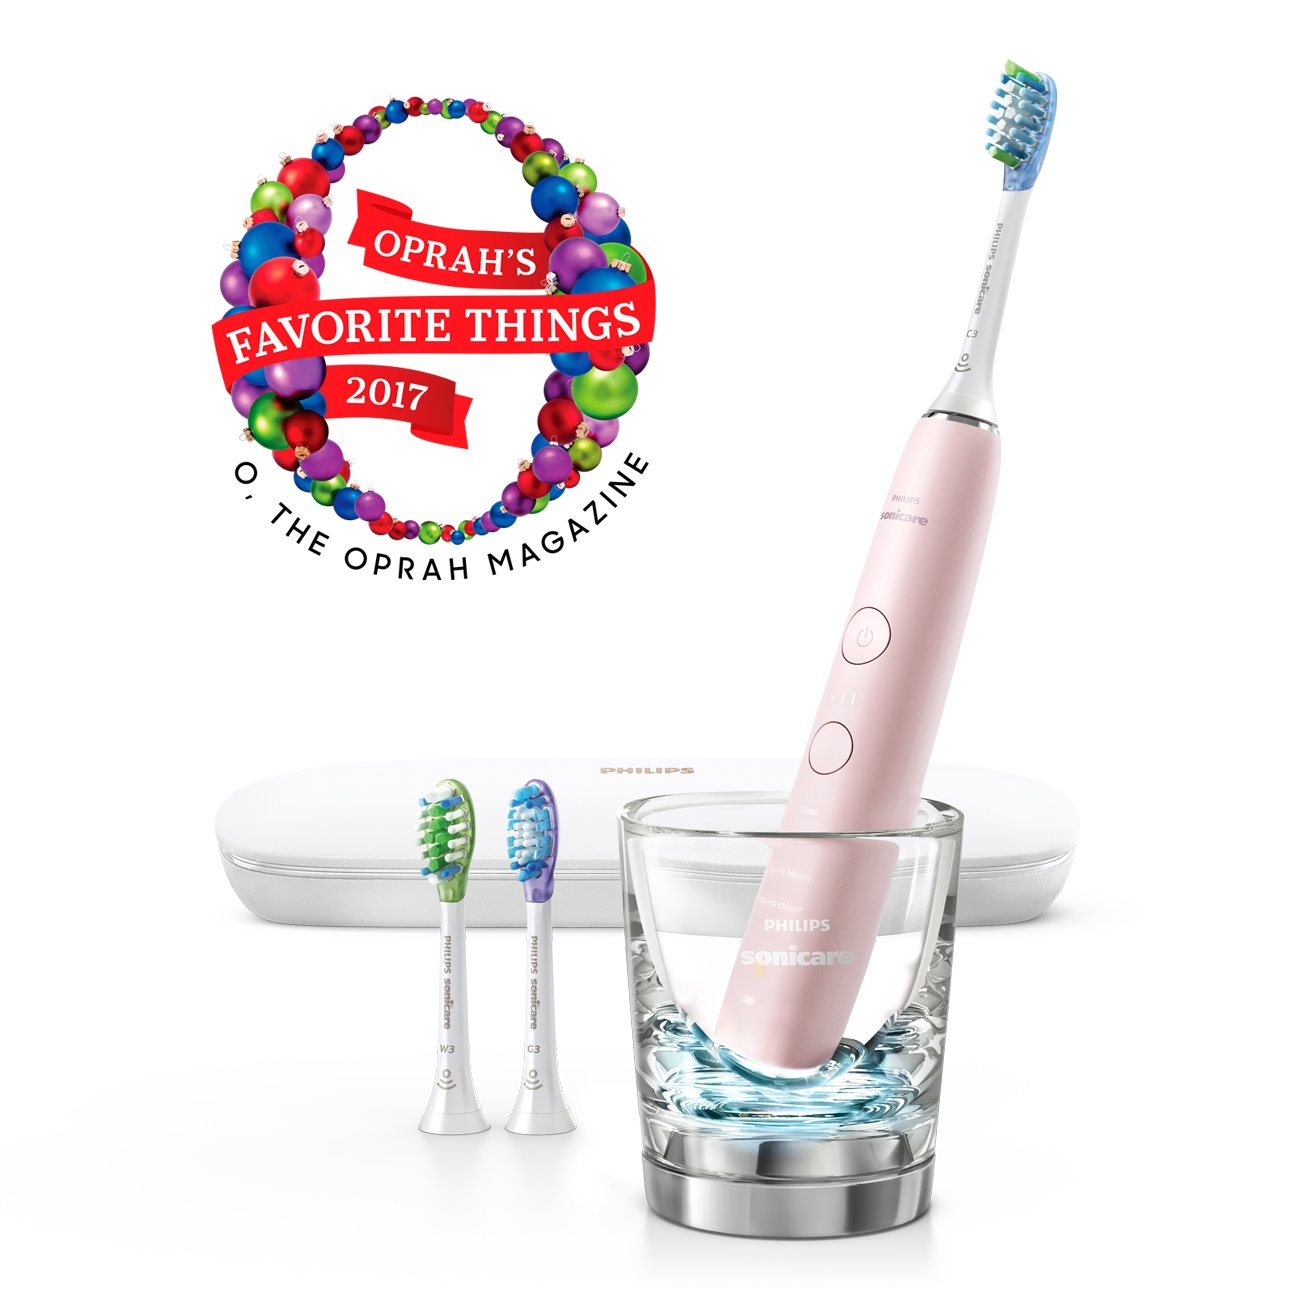 Philips Sonicare DiamondClean Smart Electric, Rechargeable toothbrush for Complete Oral Care – 9300 Series, Pink, HX9903/21 by Philips Sonicare (Image #3)